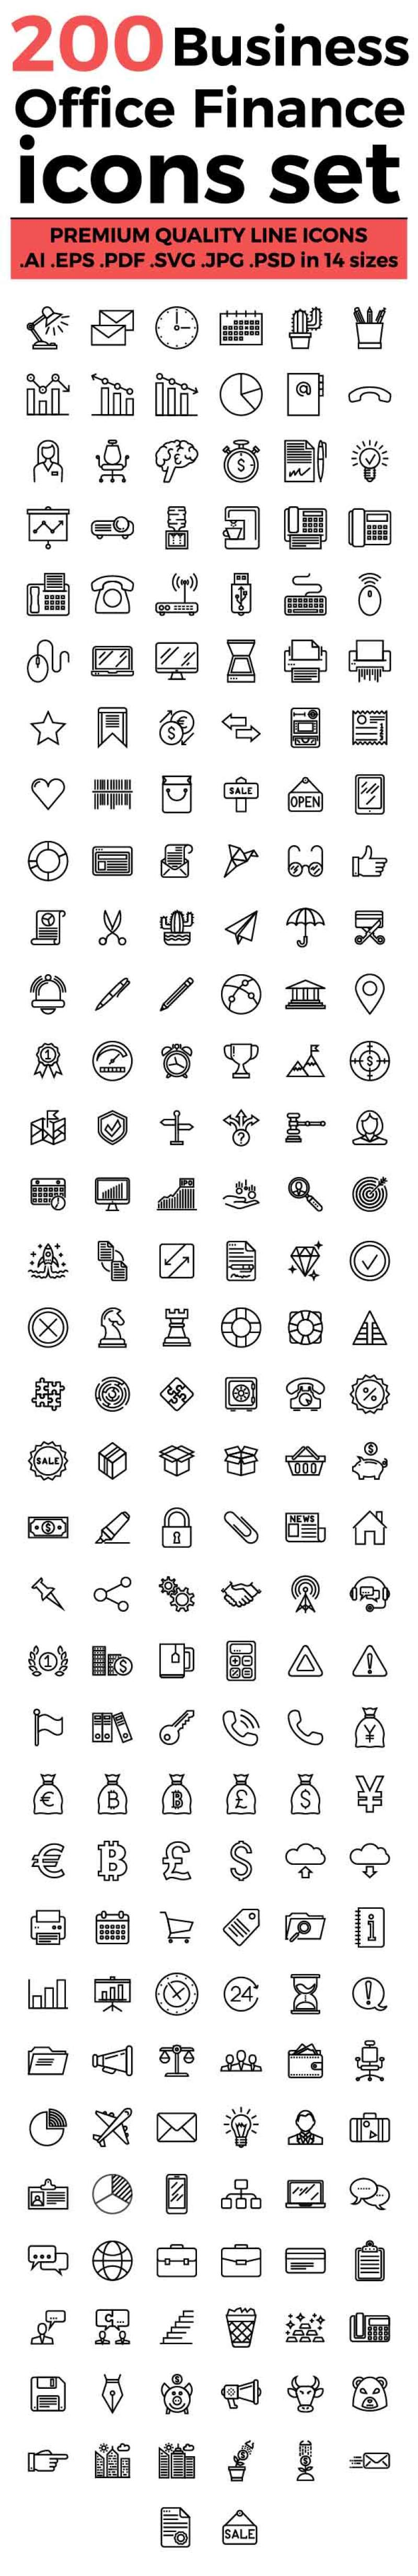 business-office-and-finance-icons-set